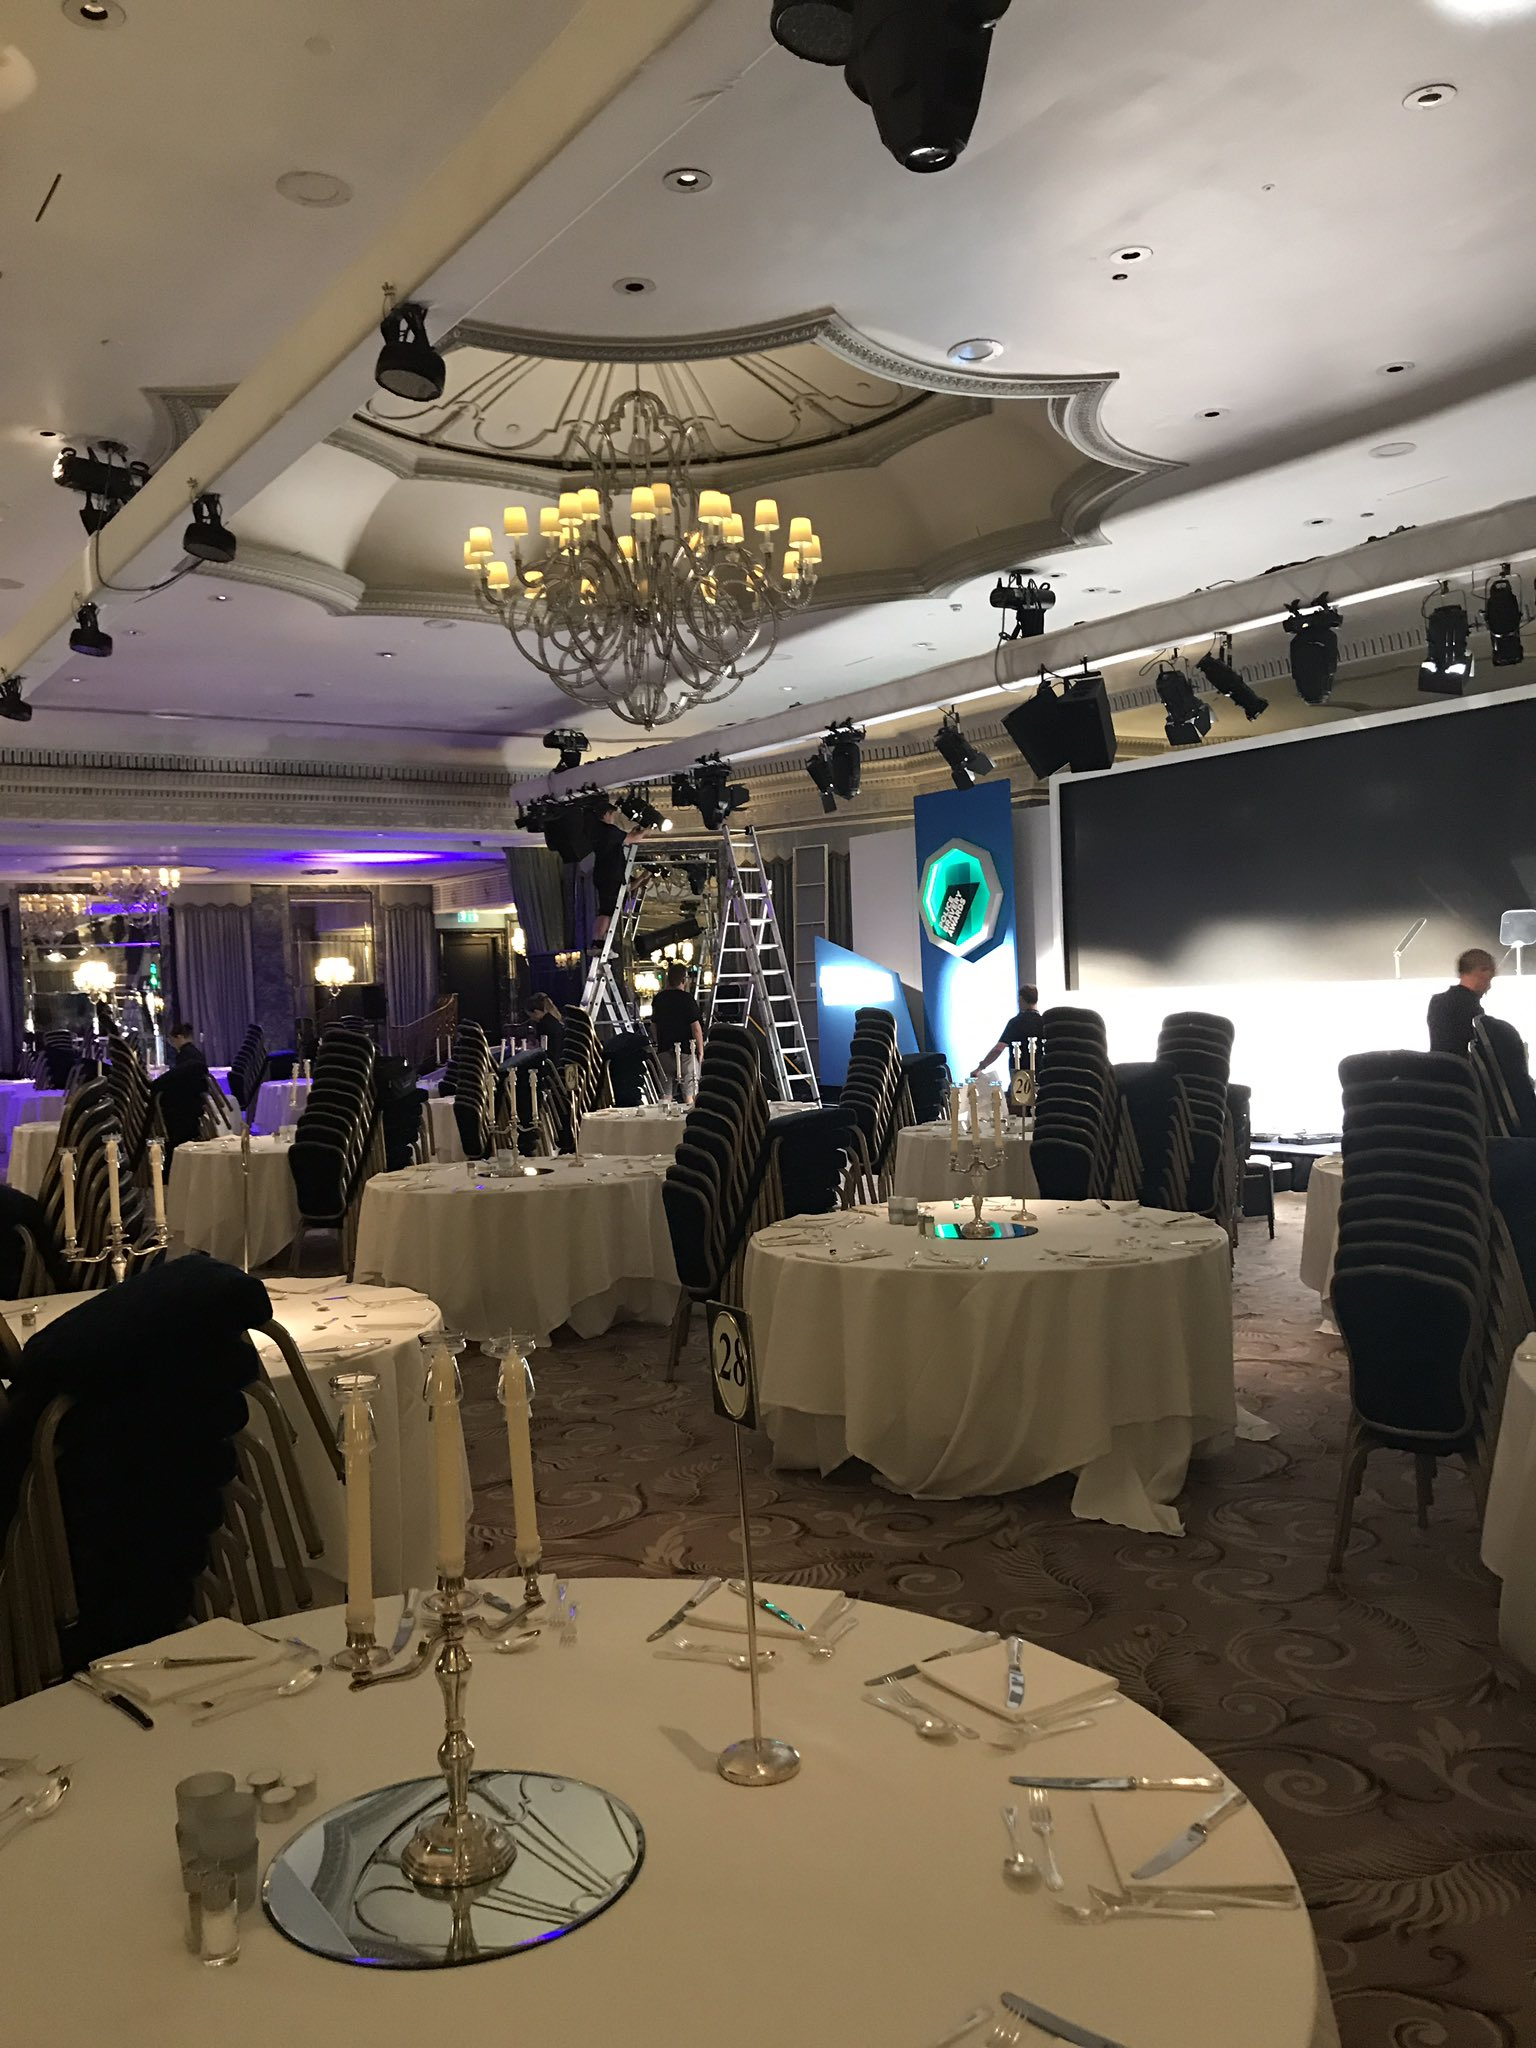 The stage is being set, tables are being laid, ready for a wonderful evening #PoliceBravery https://t.co/6PcoVmE4pF